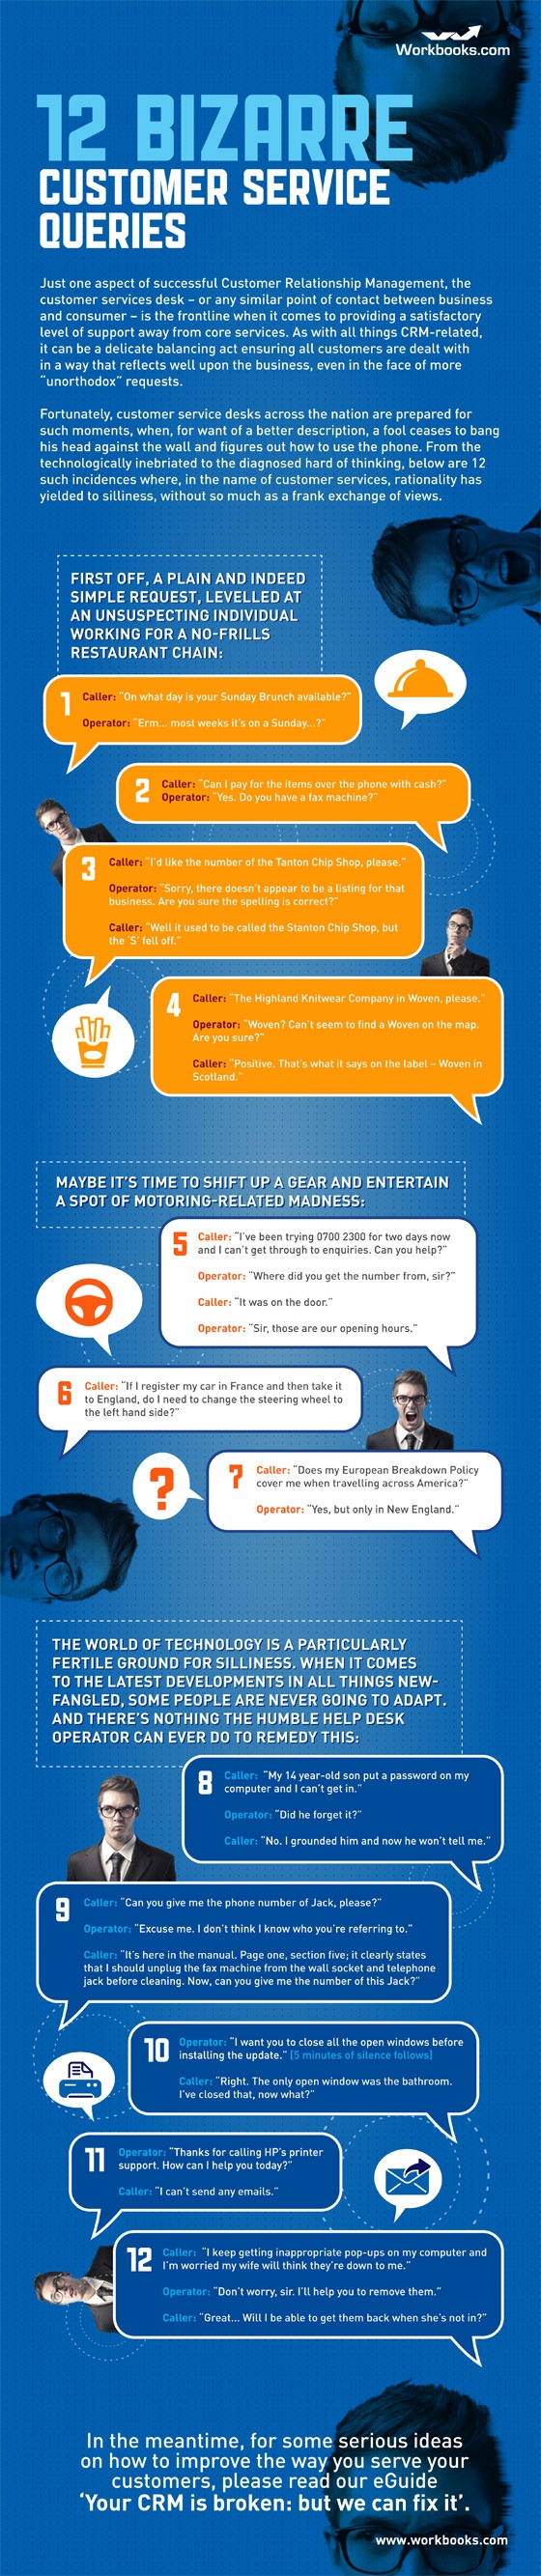 Fresh on IGM > Weird Customer Queries: Really funny! Read it now. A controversy between front desk realism and silliness and patronized customer service for the sake of CRM and brand communication policy.  > http://infographicsmania.com/12-bizarre-customer-service-queries/